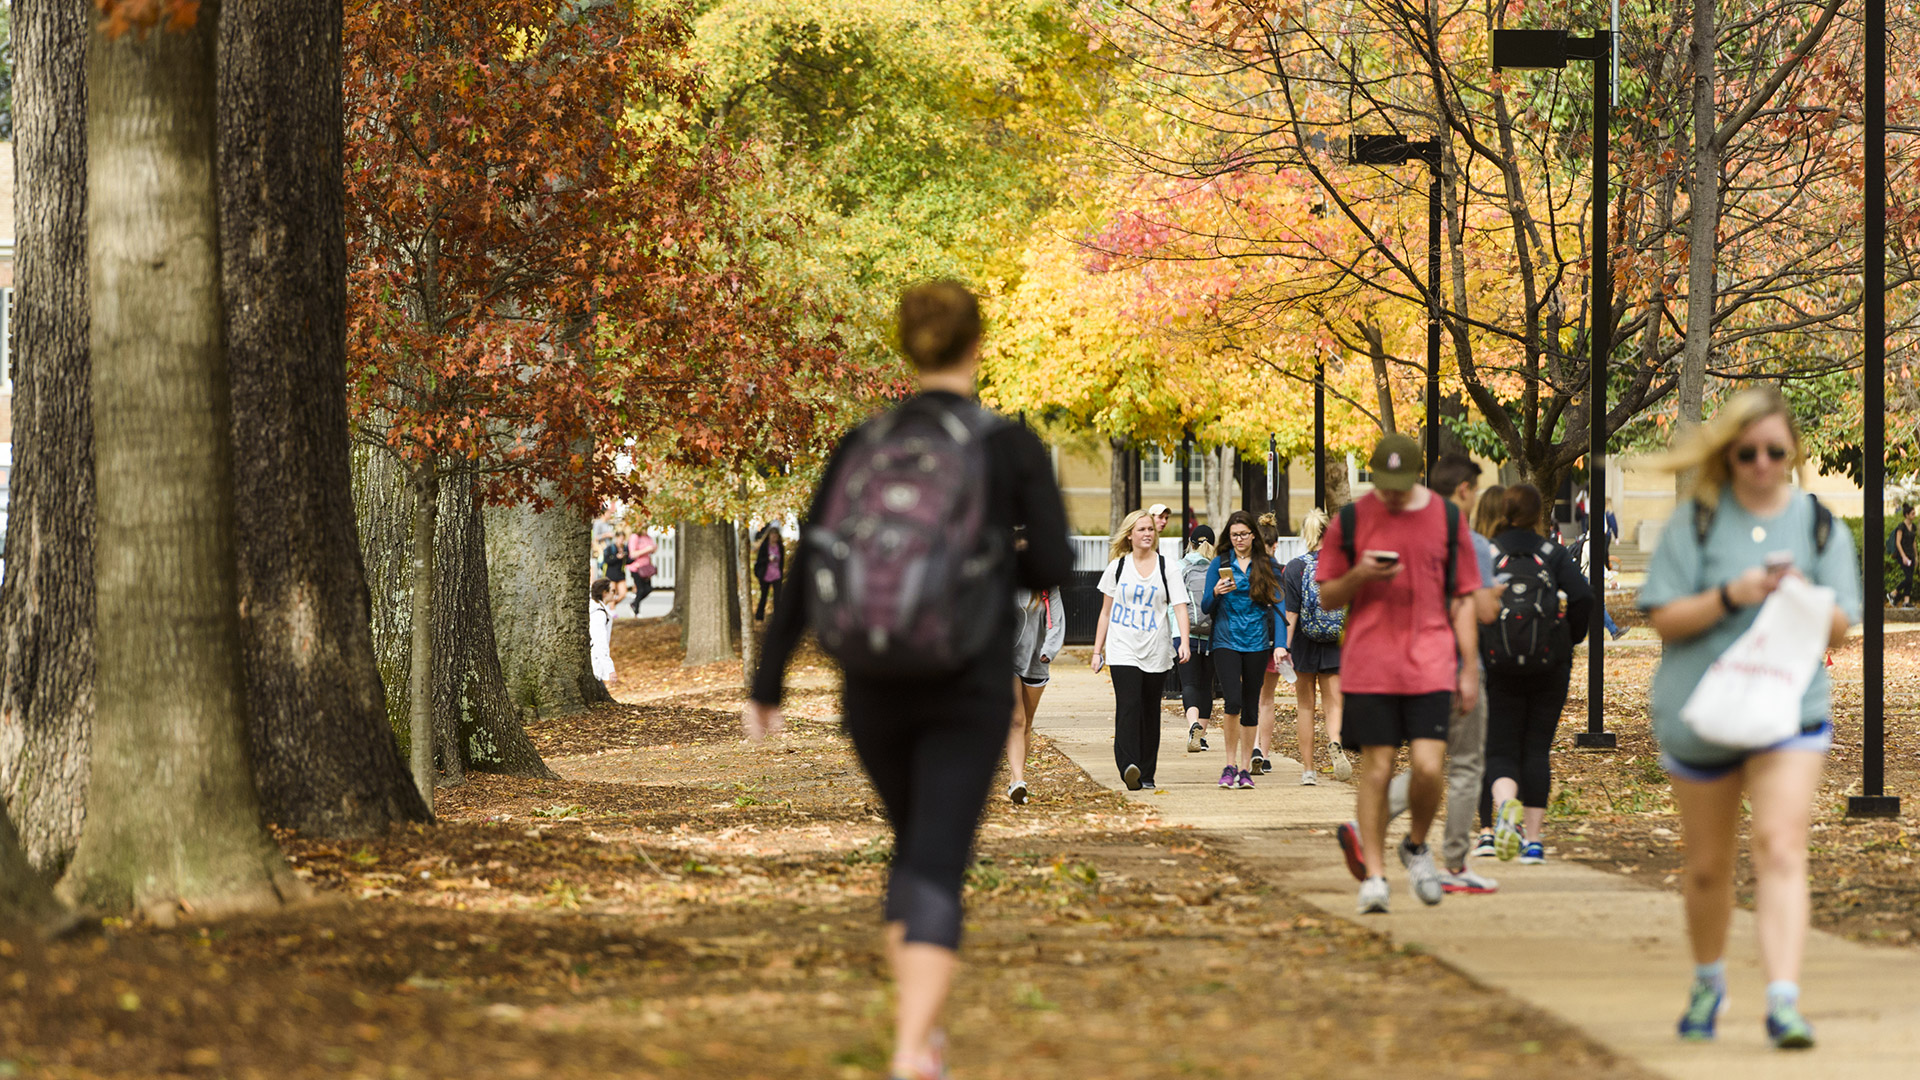 Story Image - Students walking on campus in the fall